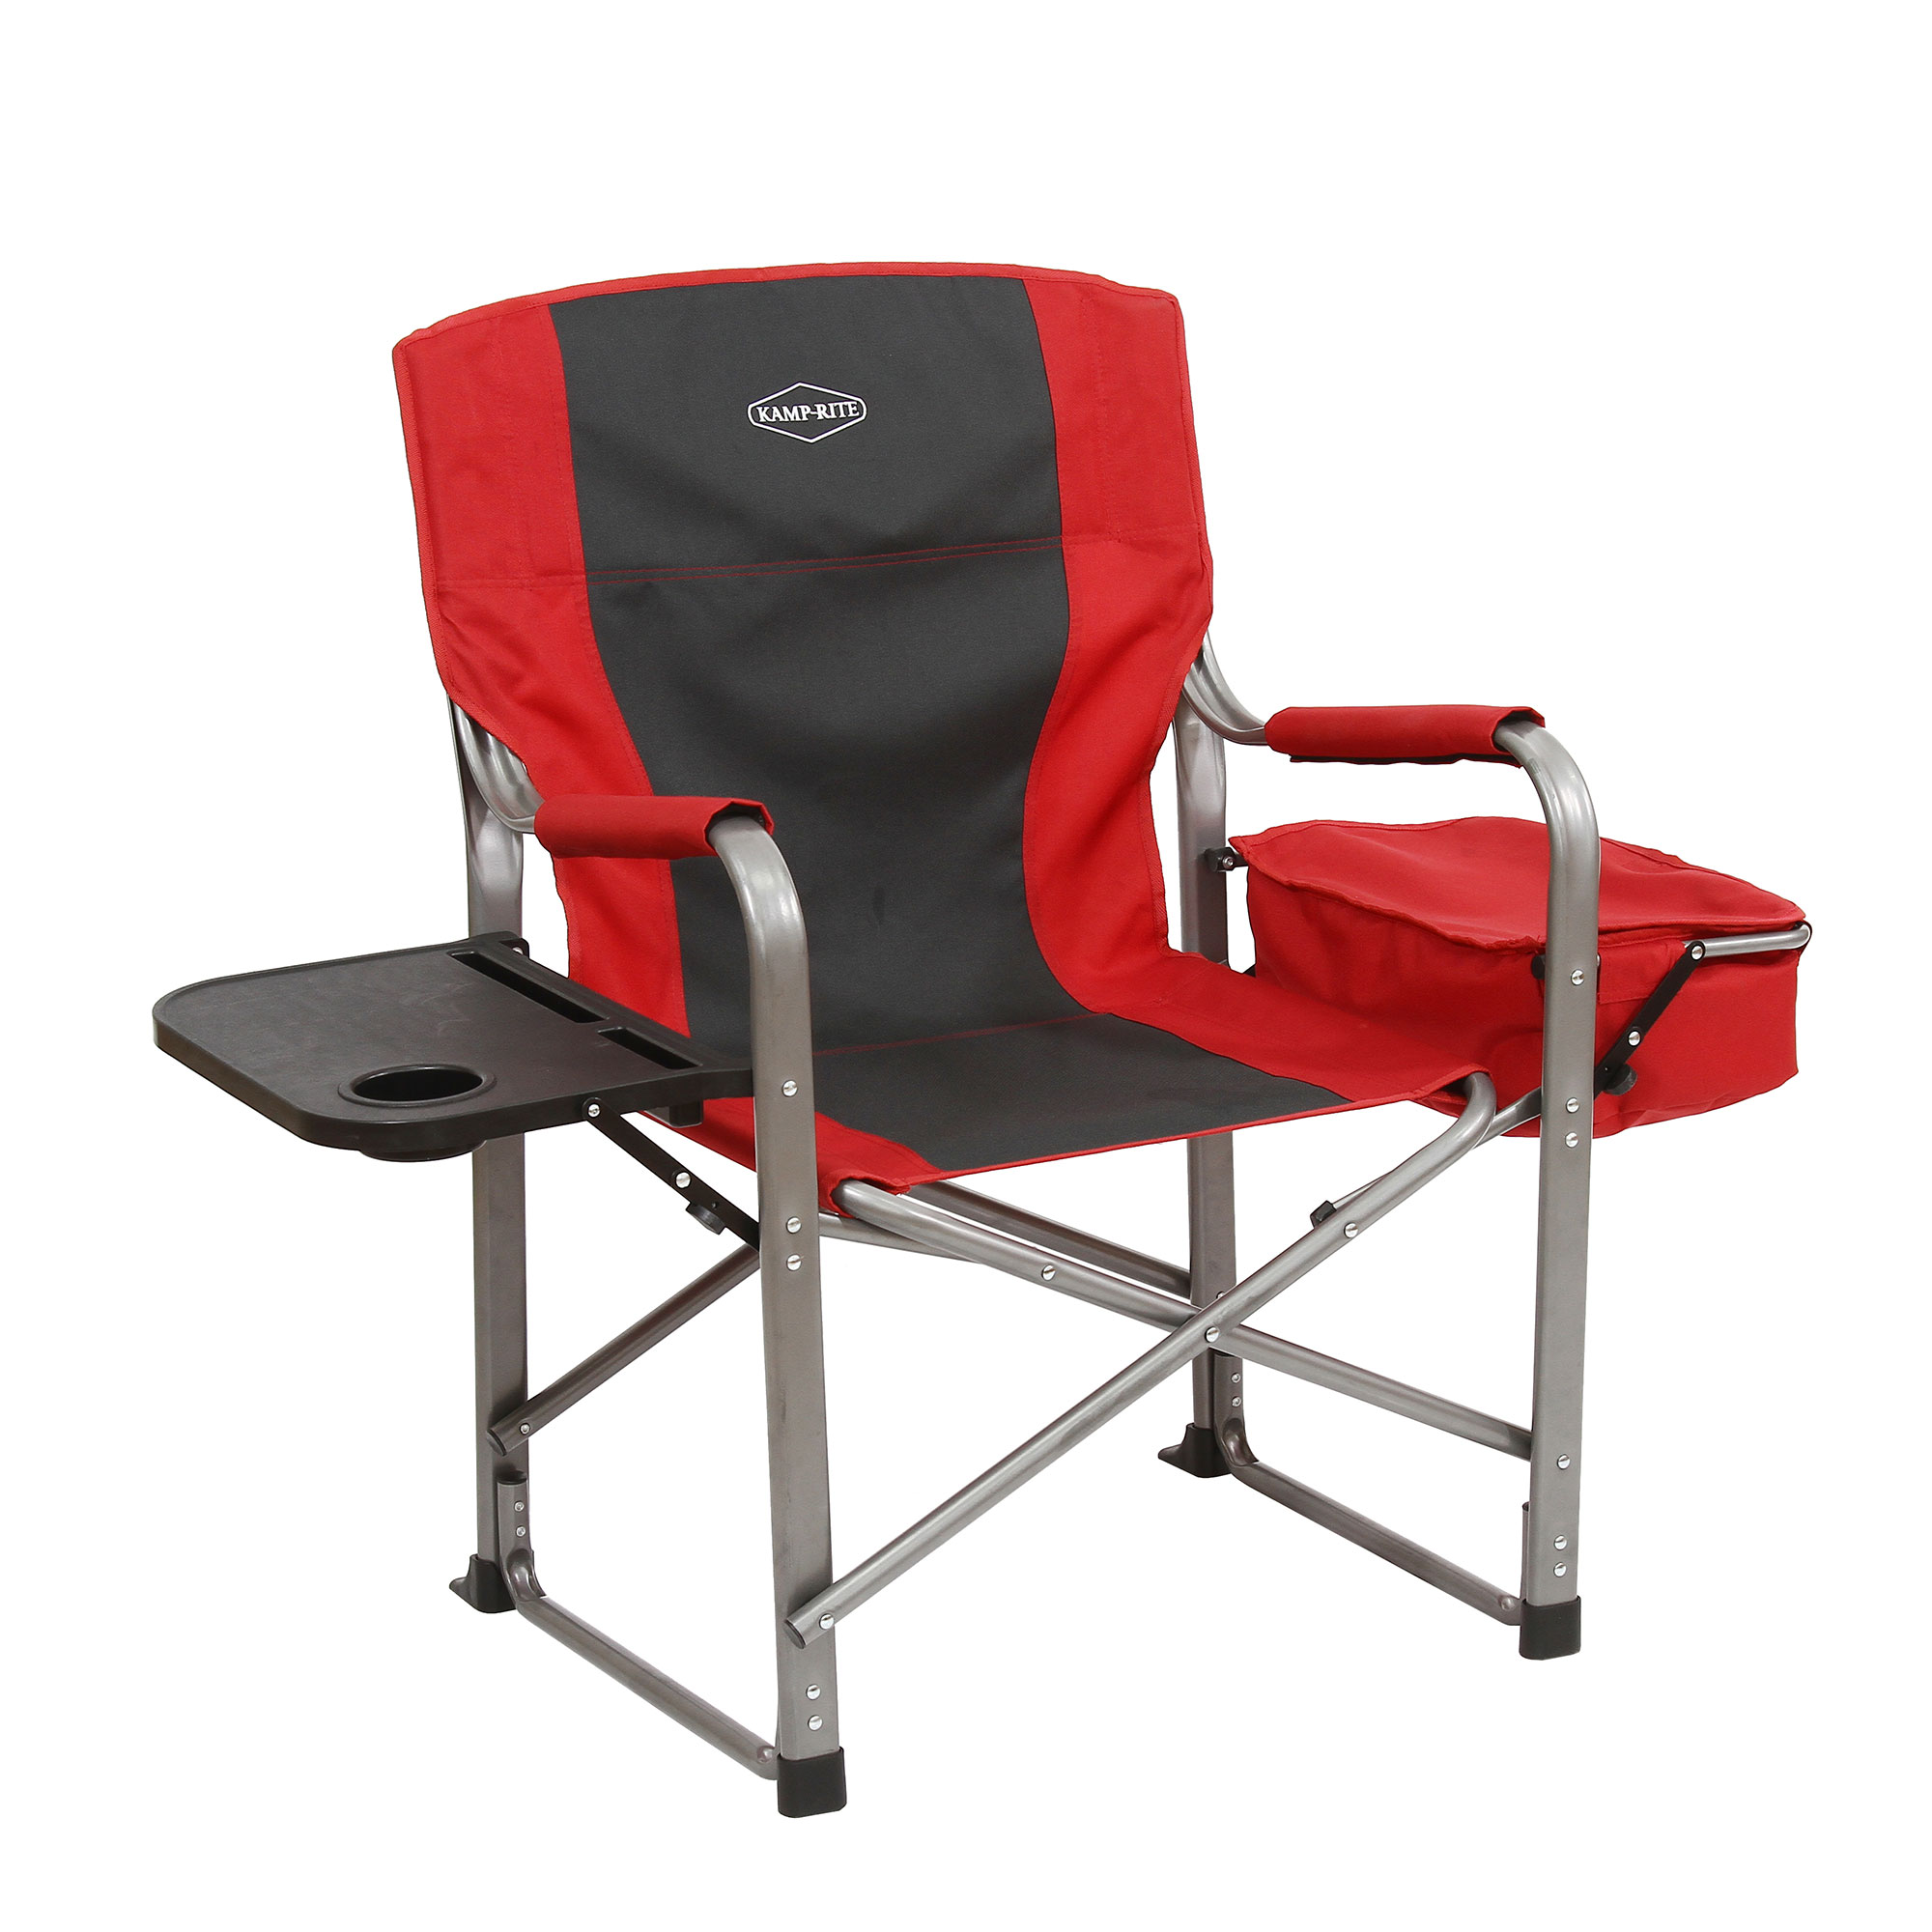 kamp rite outdoor camp folding director chair with side table resource ashx cooler red mirror lights black desk cream and wood coffee cement top storage ott target hampton bay